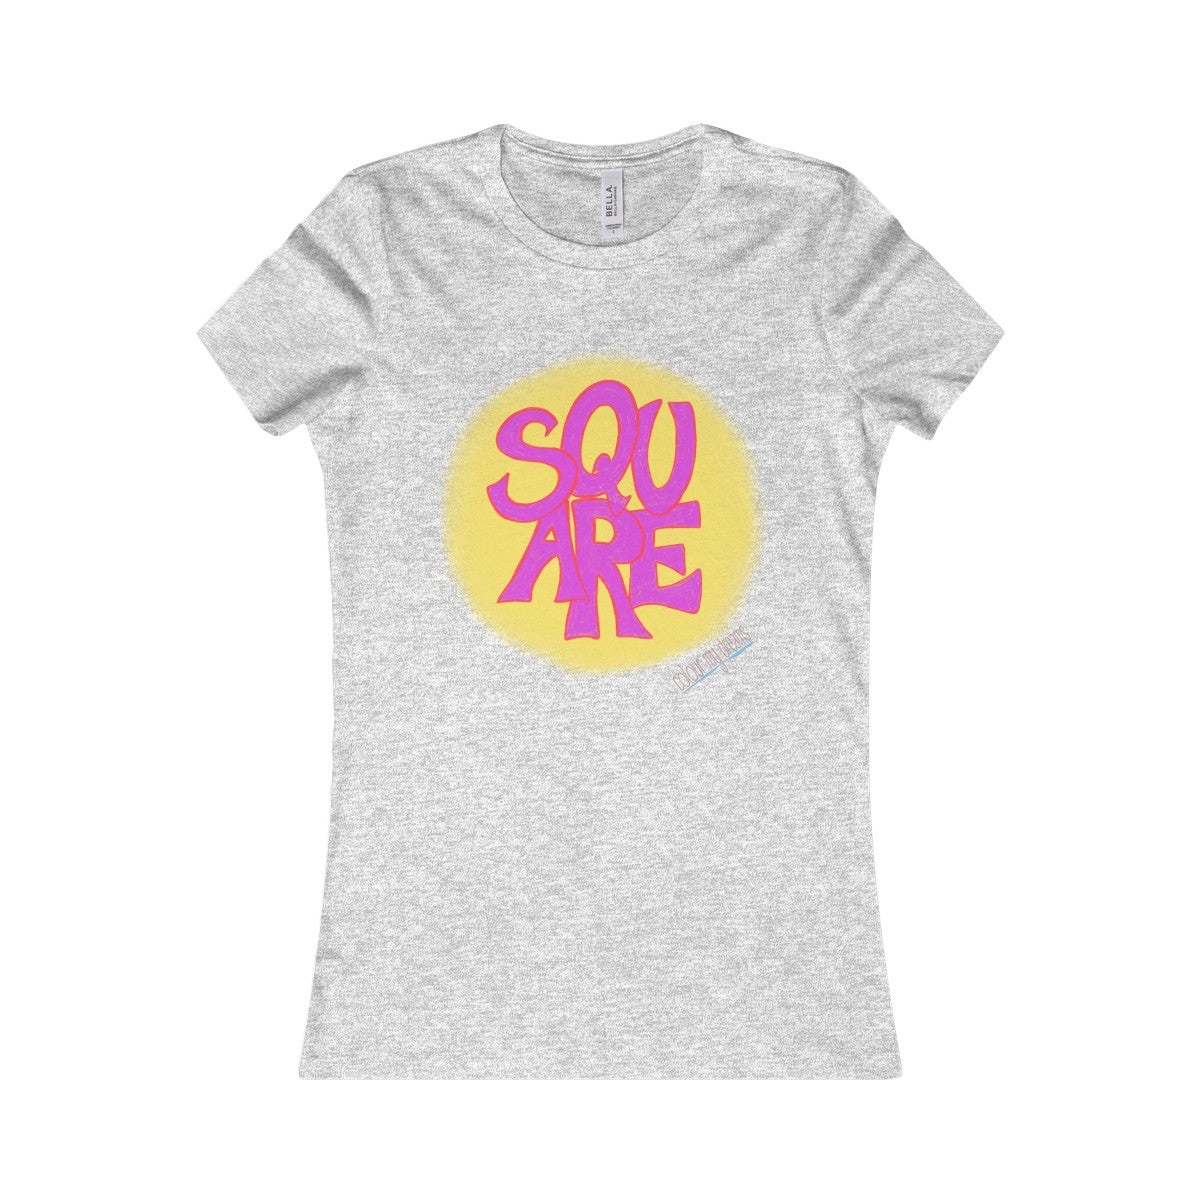 Women's Favourite T-Shirt - Square